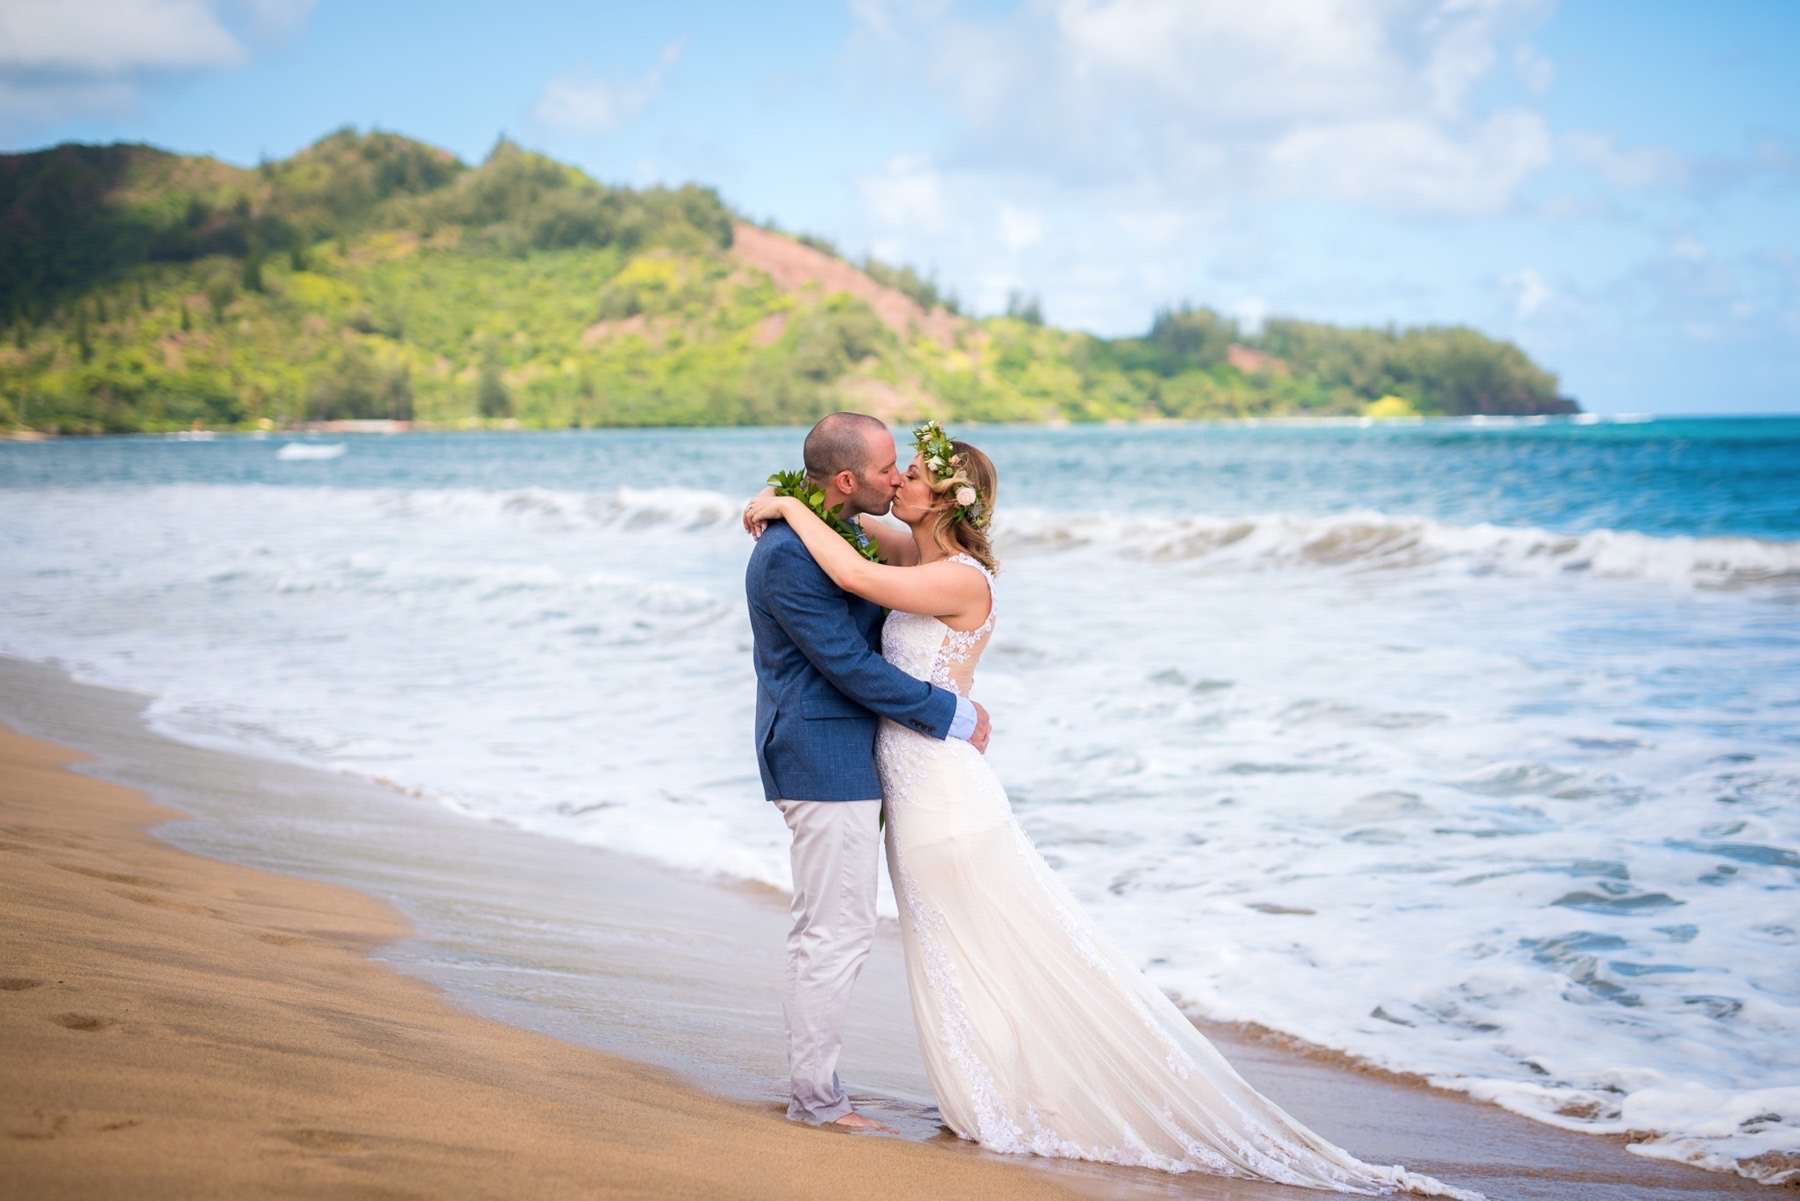 Getting married on the beach.